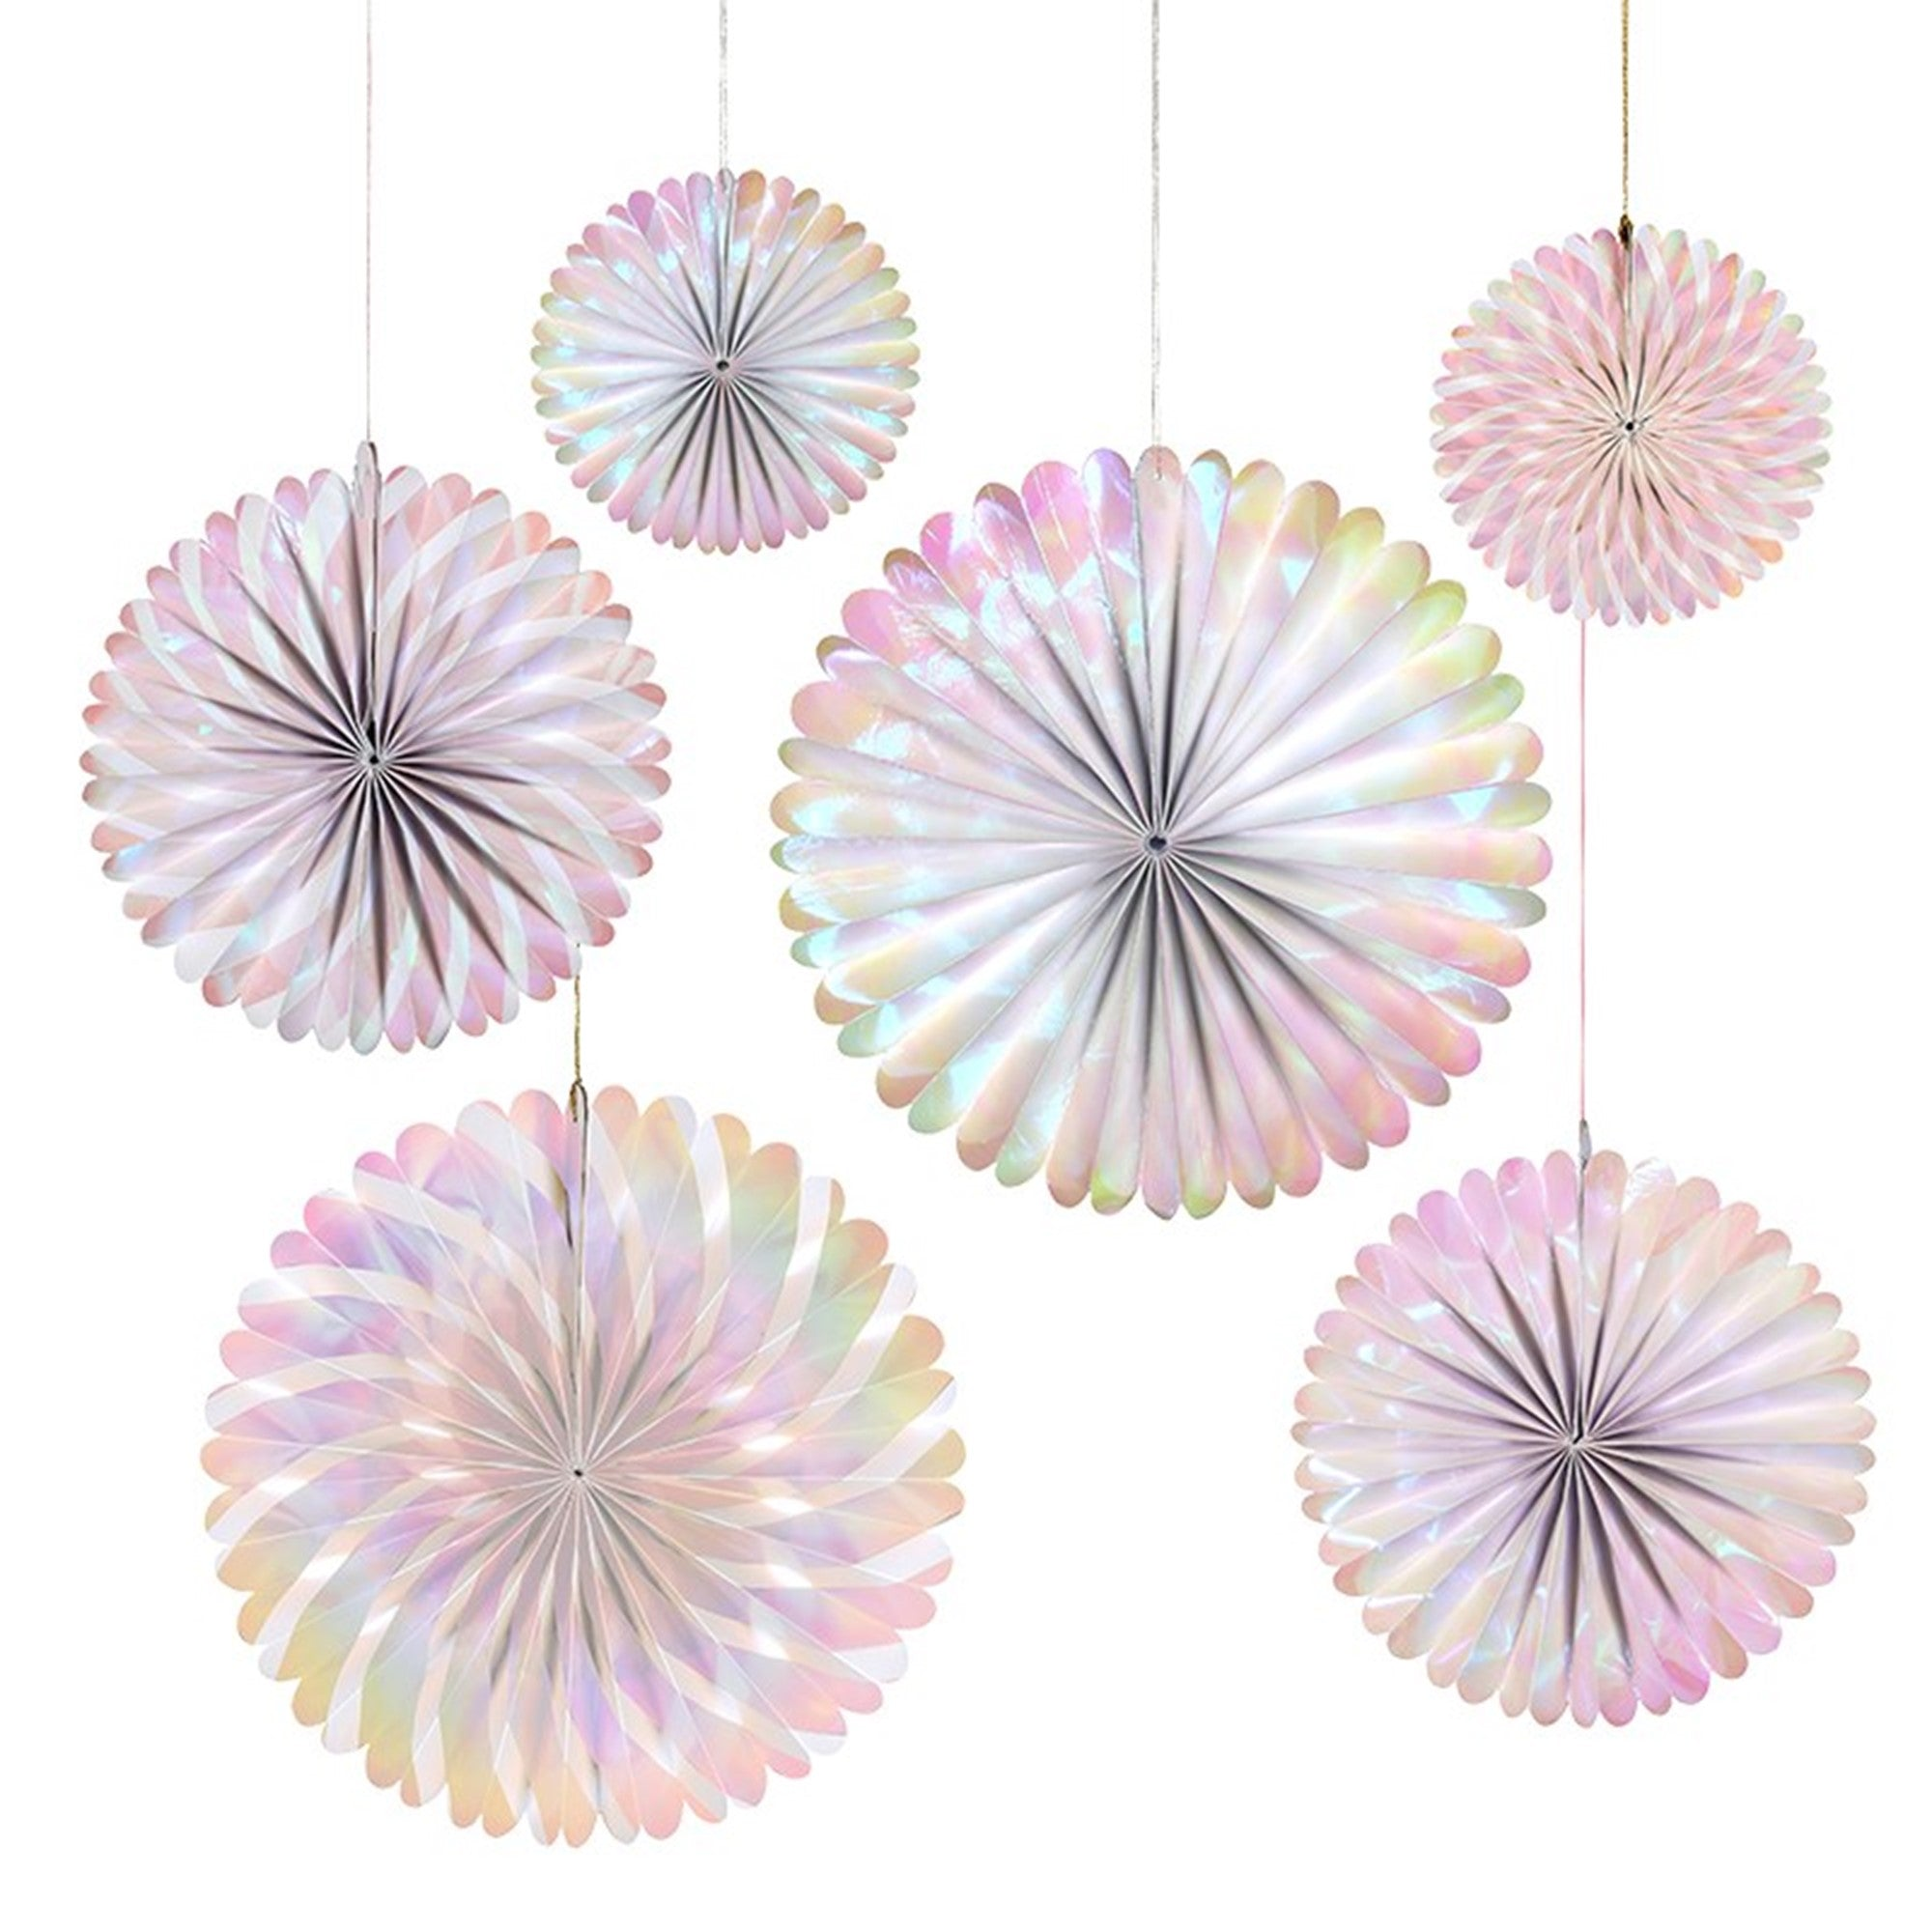 Meri Meri Iridescent Pinwheels, MM-Meri Meri UK, Putti Fine Furnishings